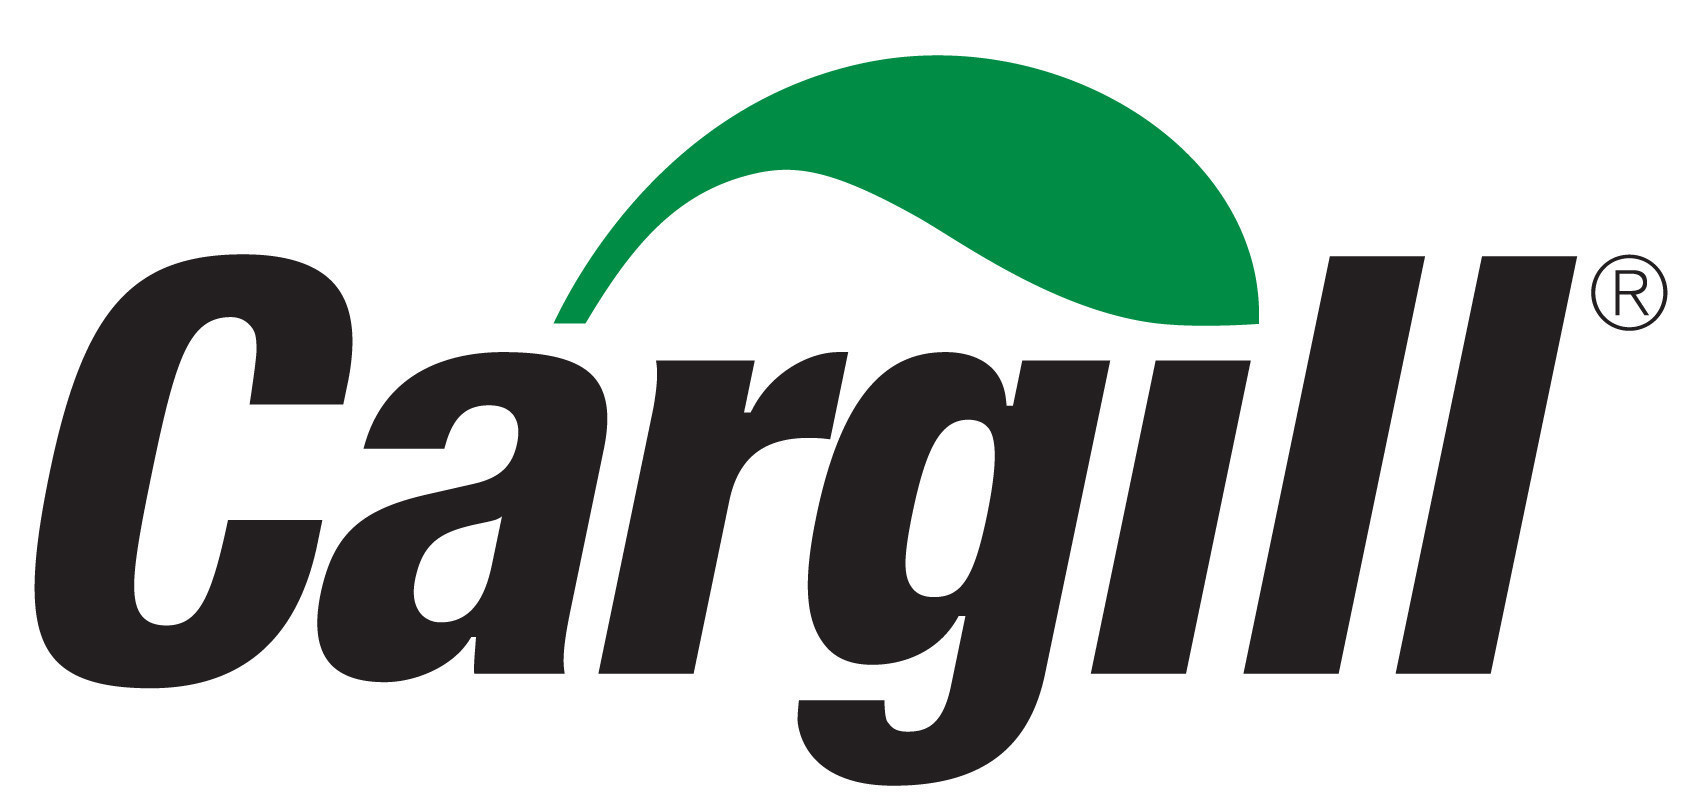 Cargill, Incorporated